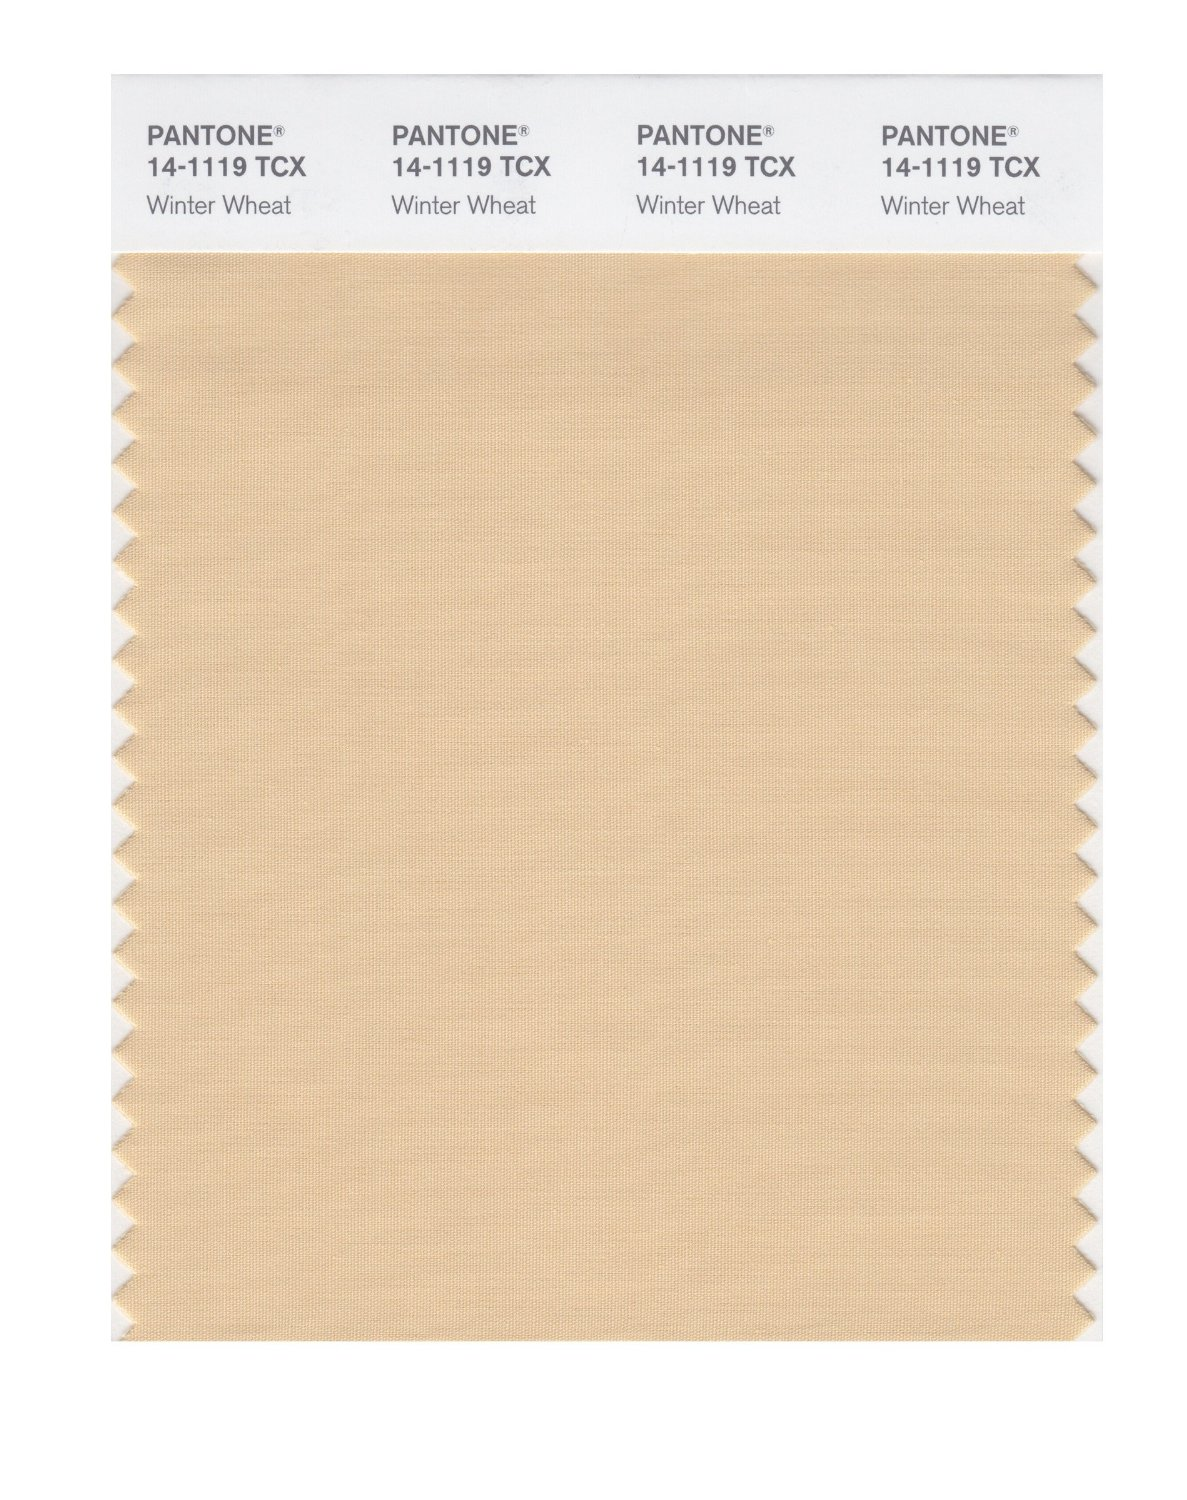 Pantone Smart Swatch 14-1119 Winter Wheat